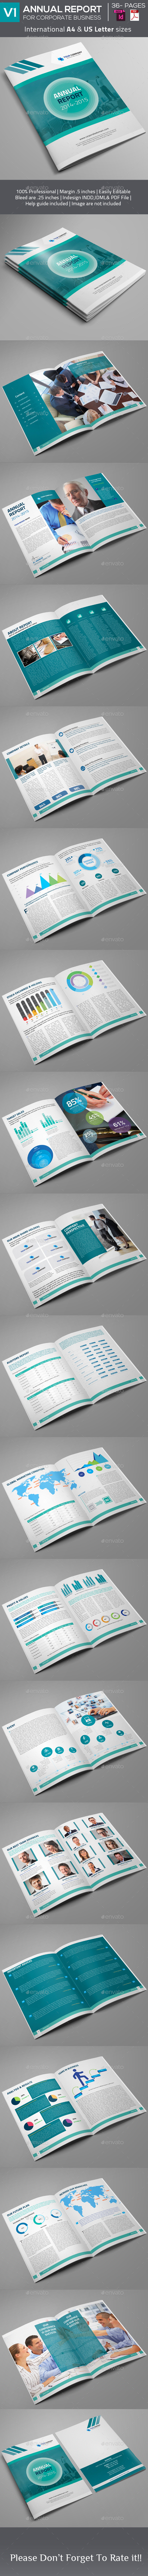 Annual Report - 36 pages V1 - Corporate Brochures